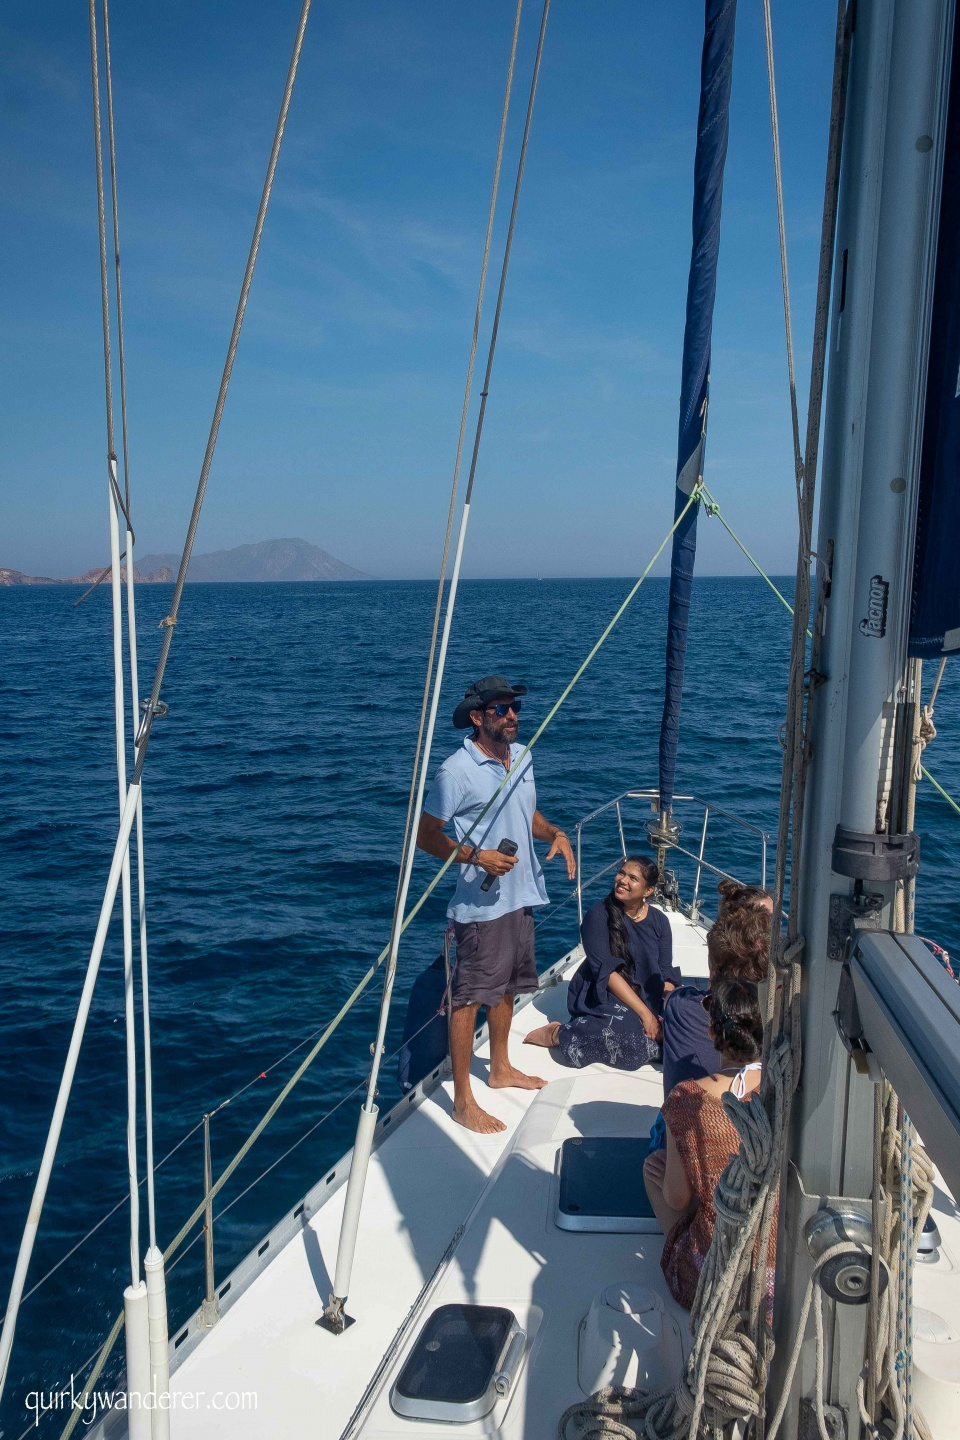 Polco sailing tours in Milos island